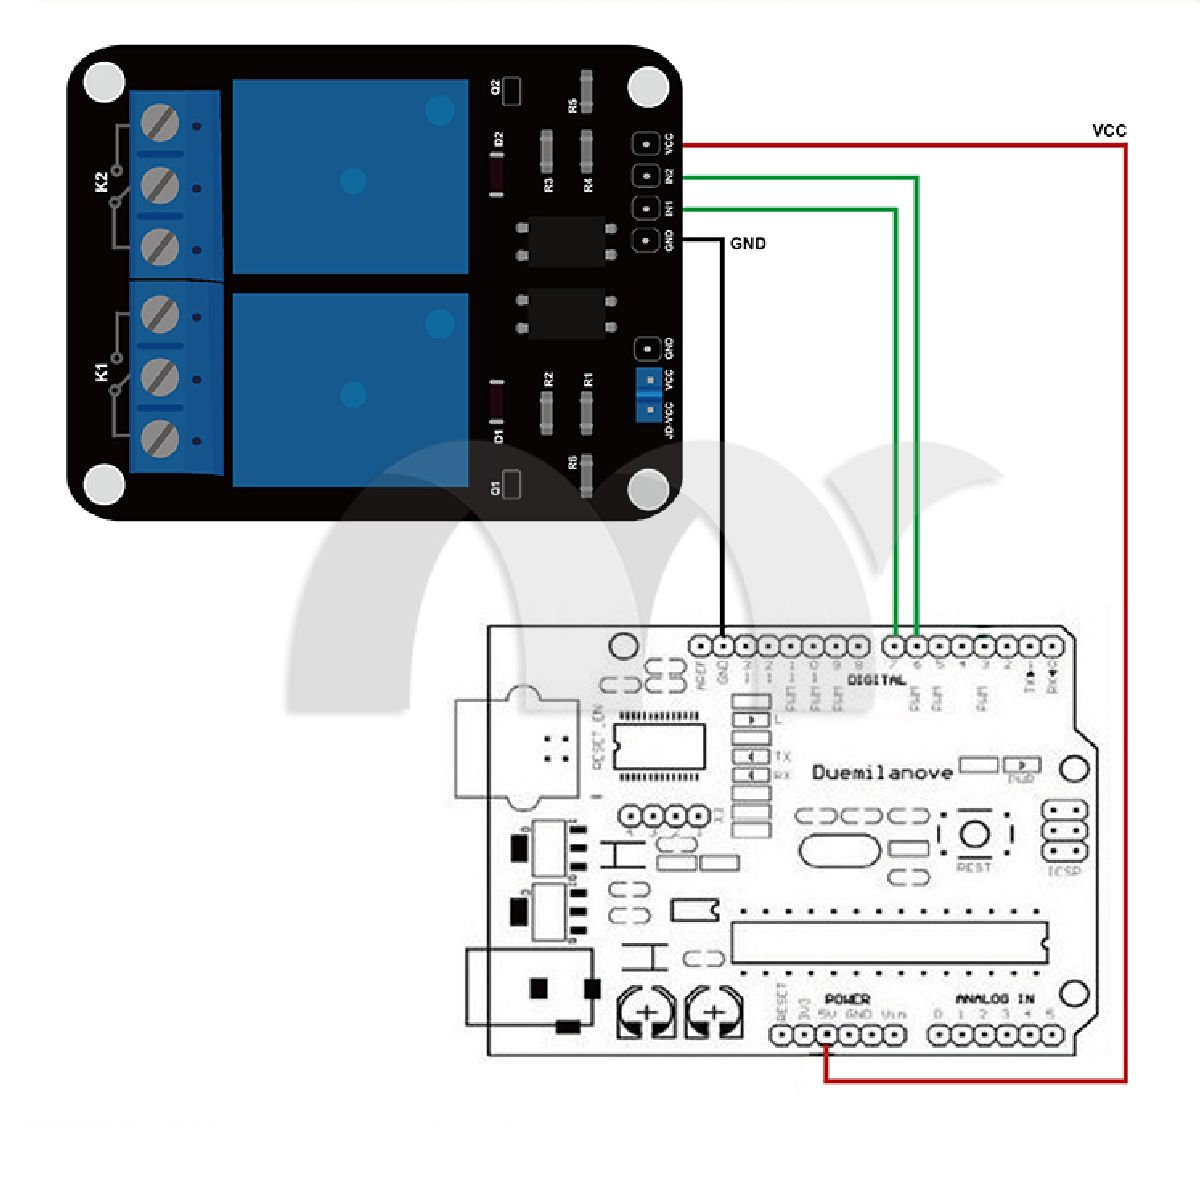 Eztronics Corp 2 Channel 24v Relay Module With Dc5v To Dc30v Converter By 74hc14 Optocoupler For Arduino Dsp Avr Pic Arm Computers Accessories